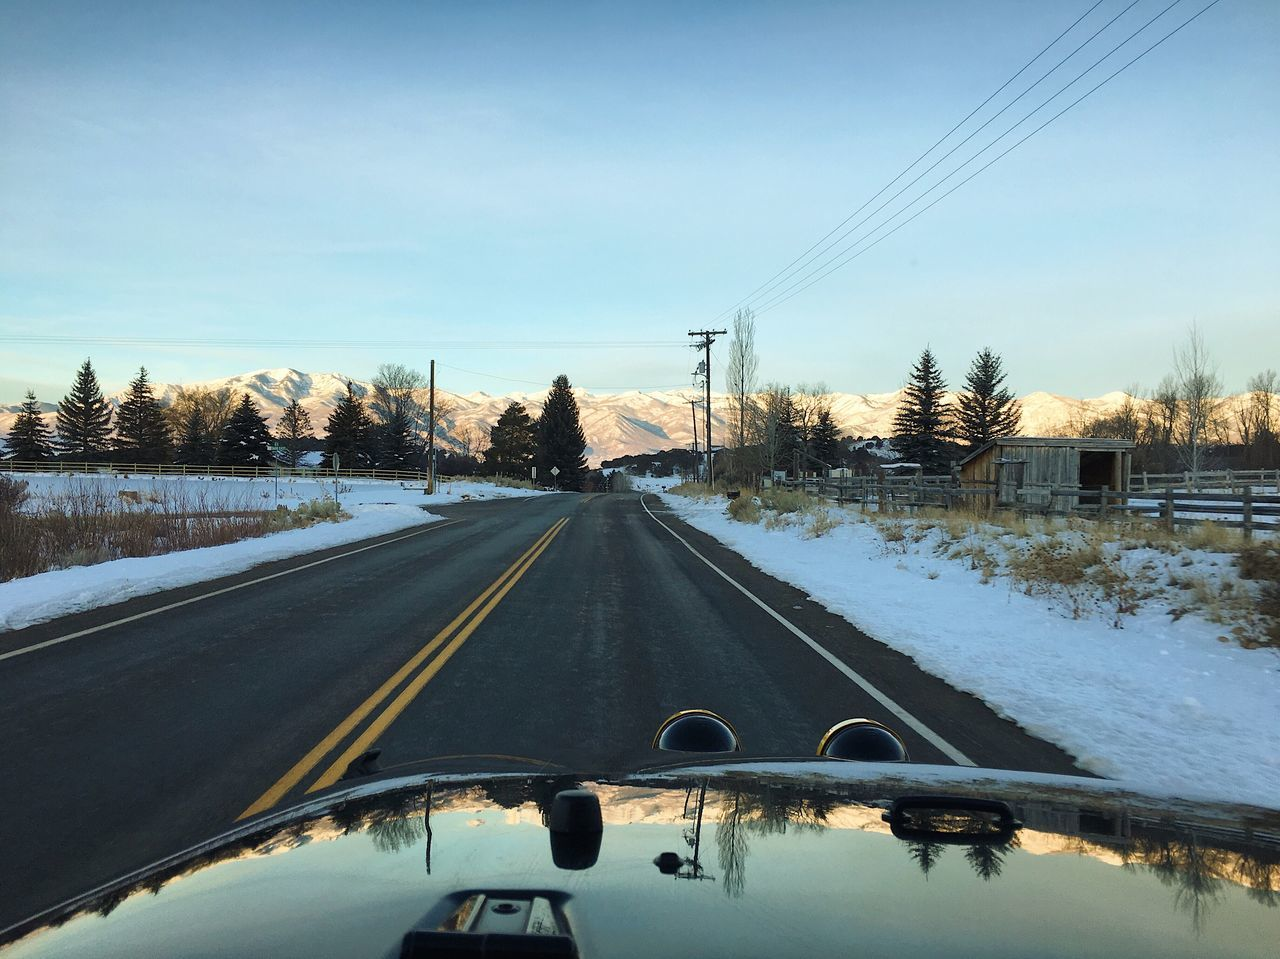 transportation, snow, winter, cold temperature, mode of transportation, car, sky, land vehicle, tree, road, windshield, motor vehicle, plant, glass - material, vehicle interior, nature, no people, transparent, covering, diminishing perspective, car point of view